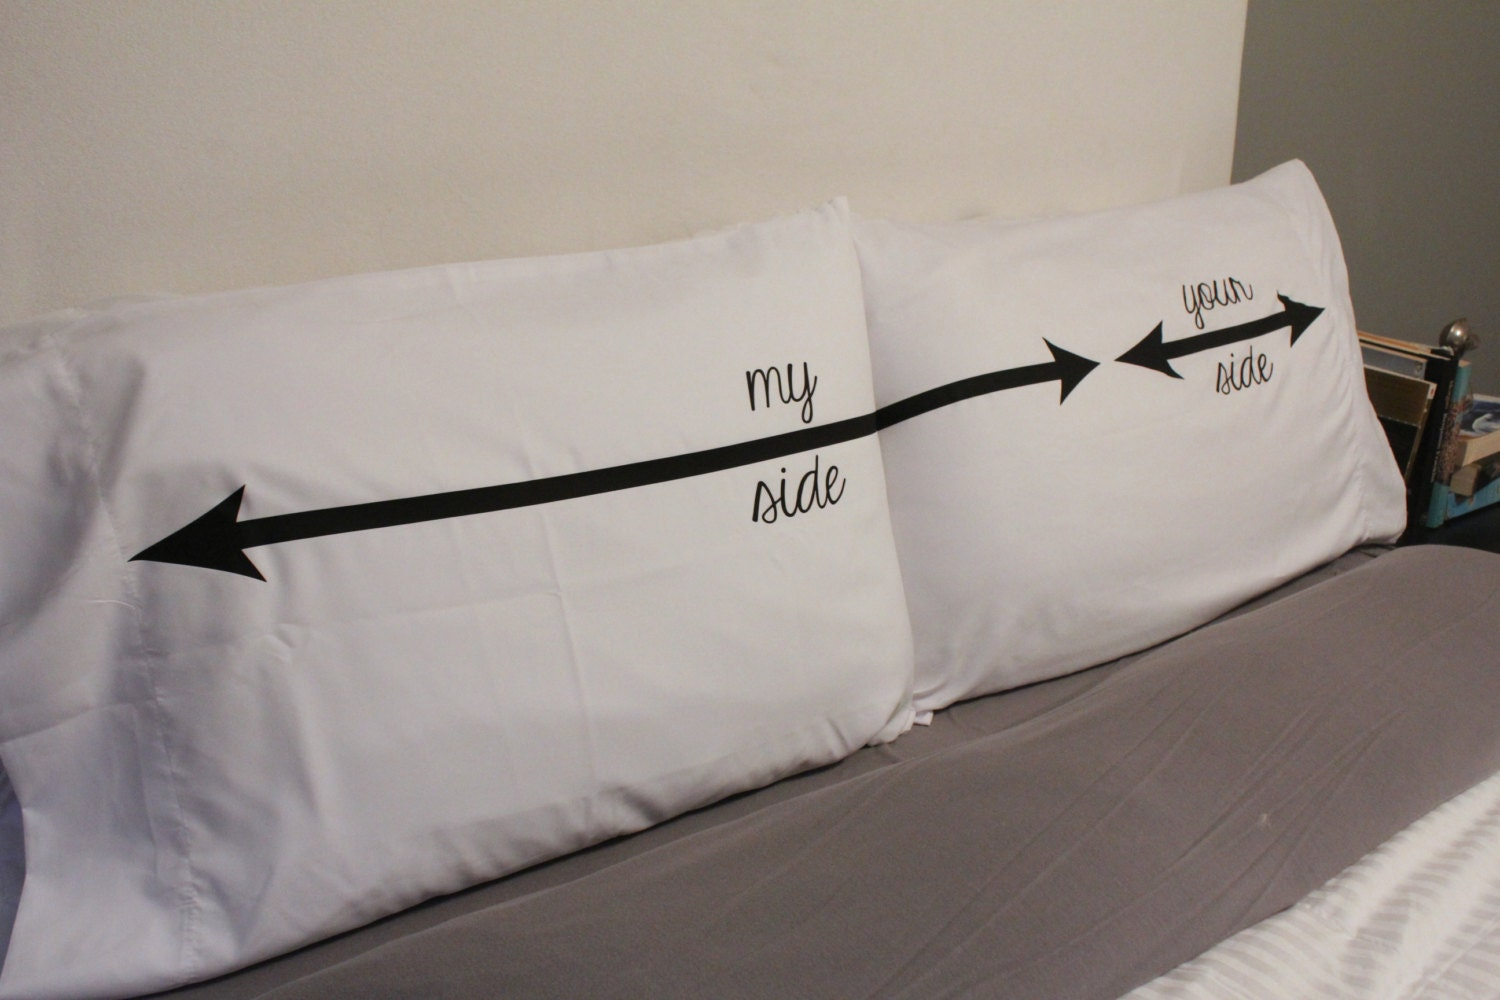 cases i his pillowcases hubby in my products wifey collections love matching pillow hers set and couple